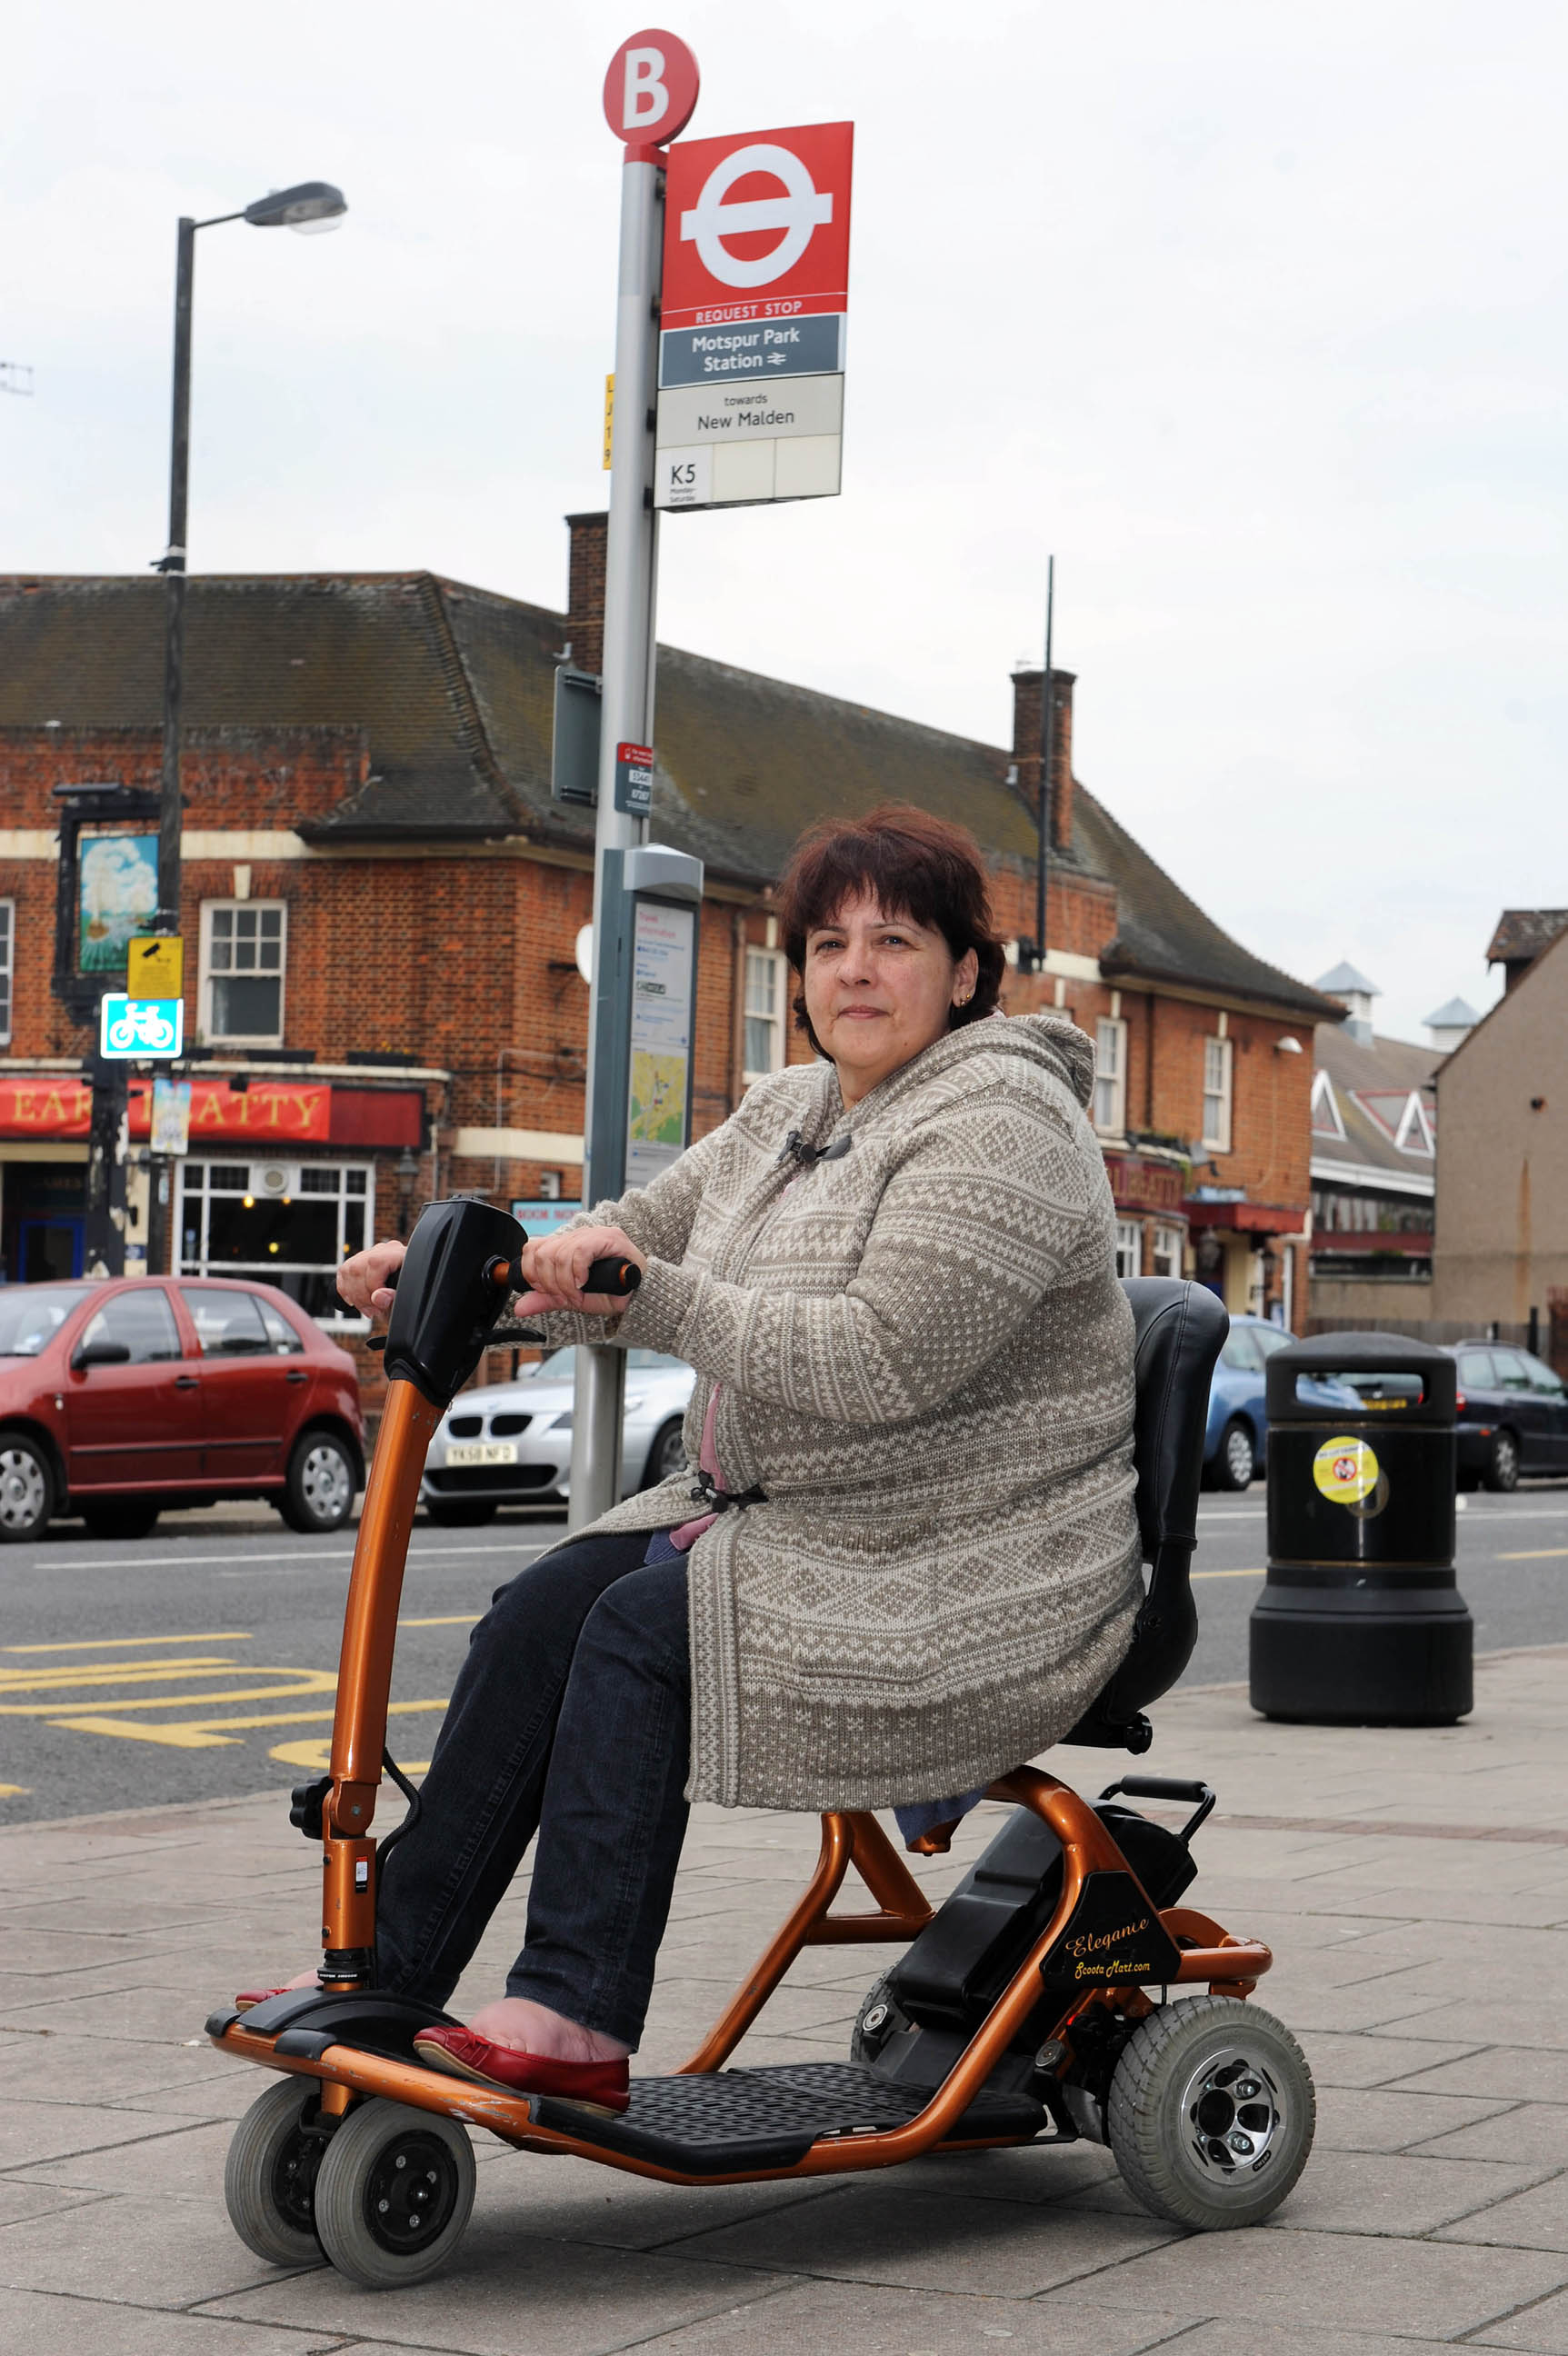 Julia Bowers, 56, cries foul after being denied bus travel because she drives the wrong type of mobility scooter